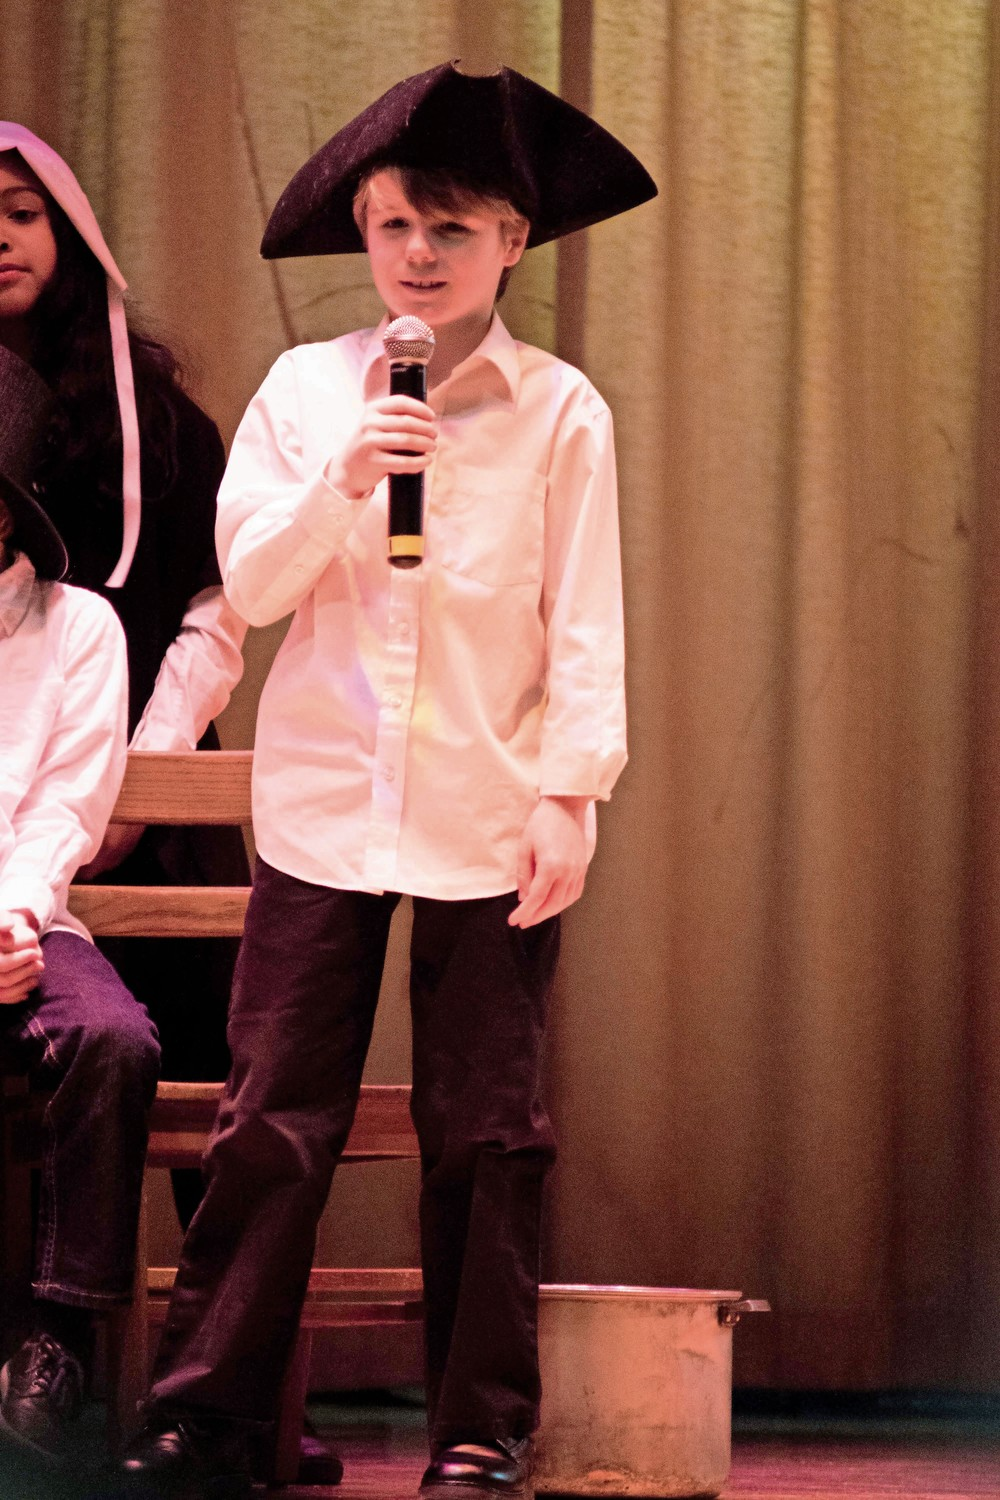 Cian Gaughan, a fourth-grade student, at P.S. 81 speaks in a play about early American history. The school has adopted a new social studies curriculum called 'Passport to Social Studies,' which encourages students to think like historians.